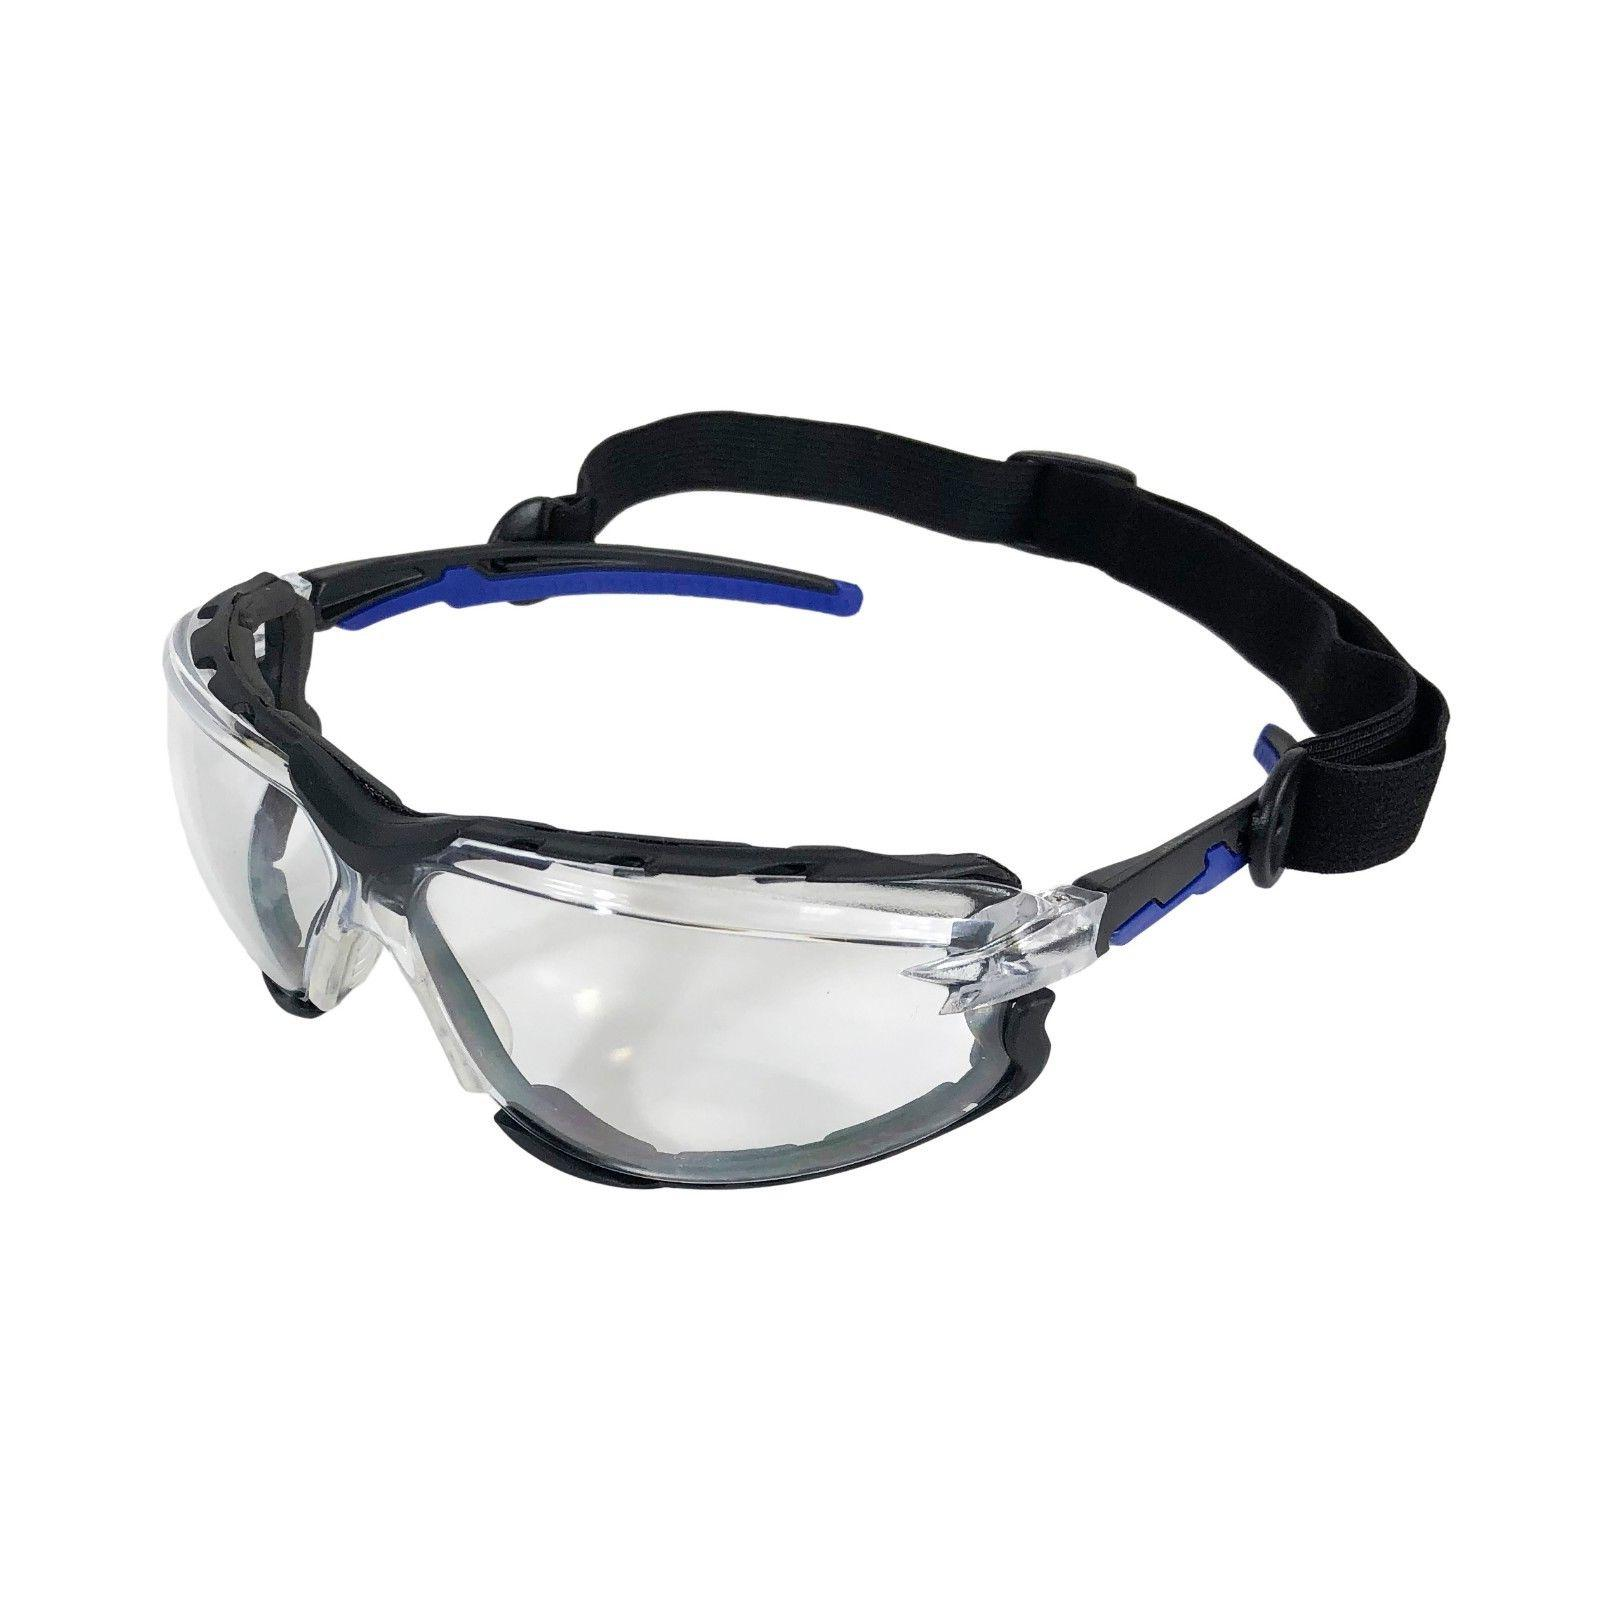 falconx anti fog safety glasses with removable